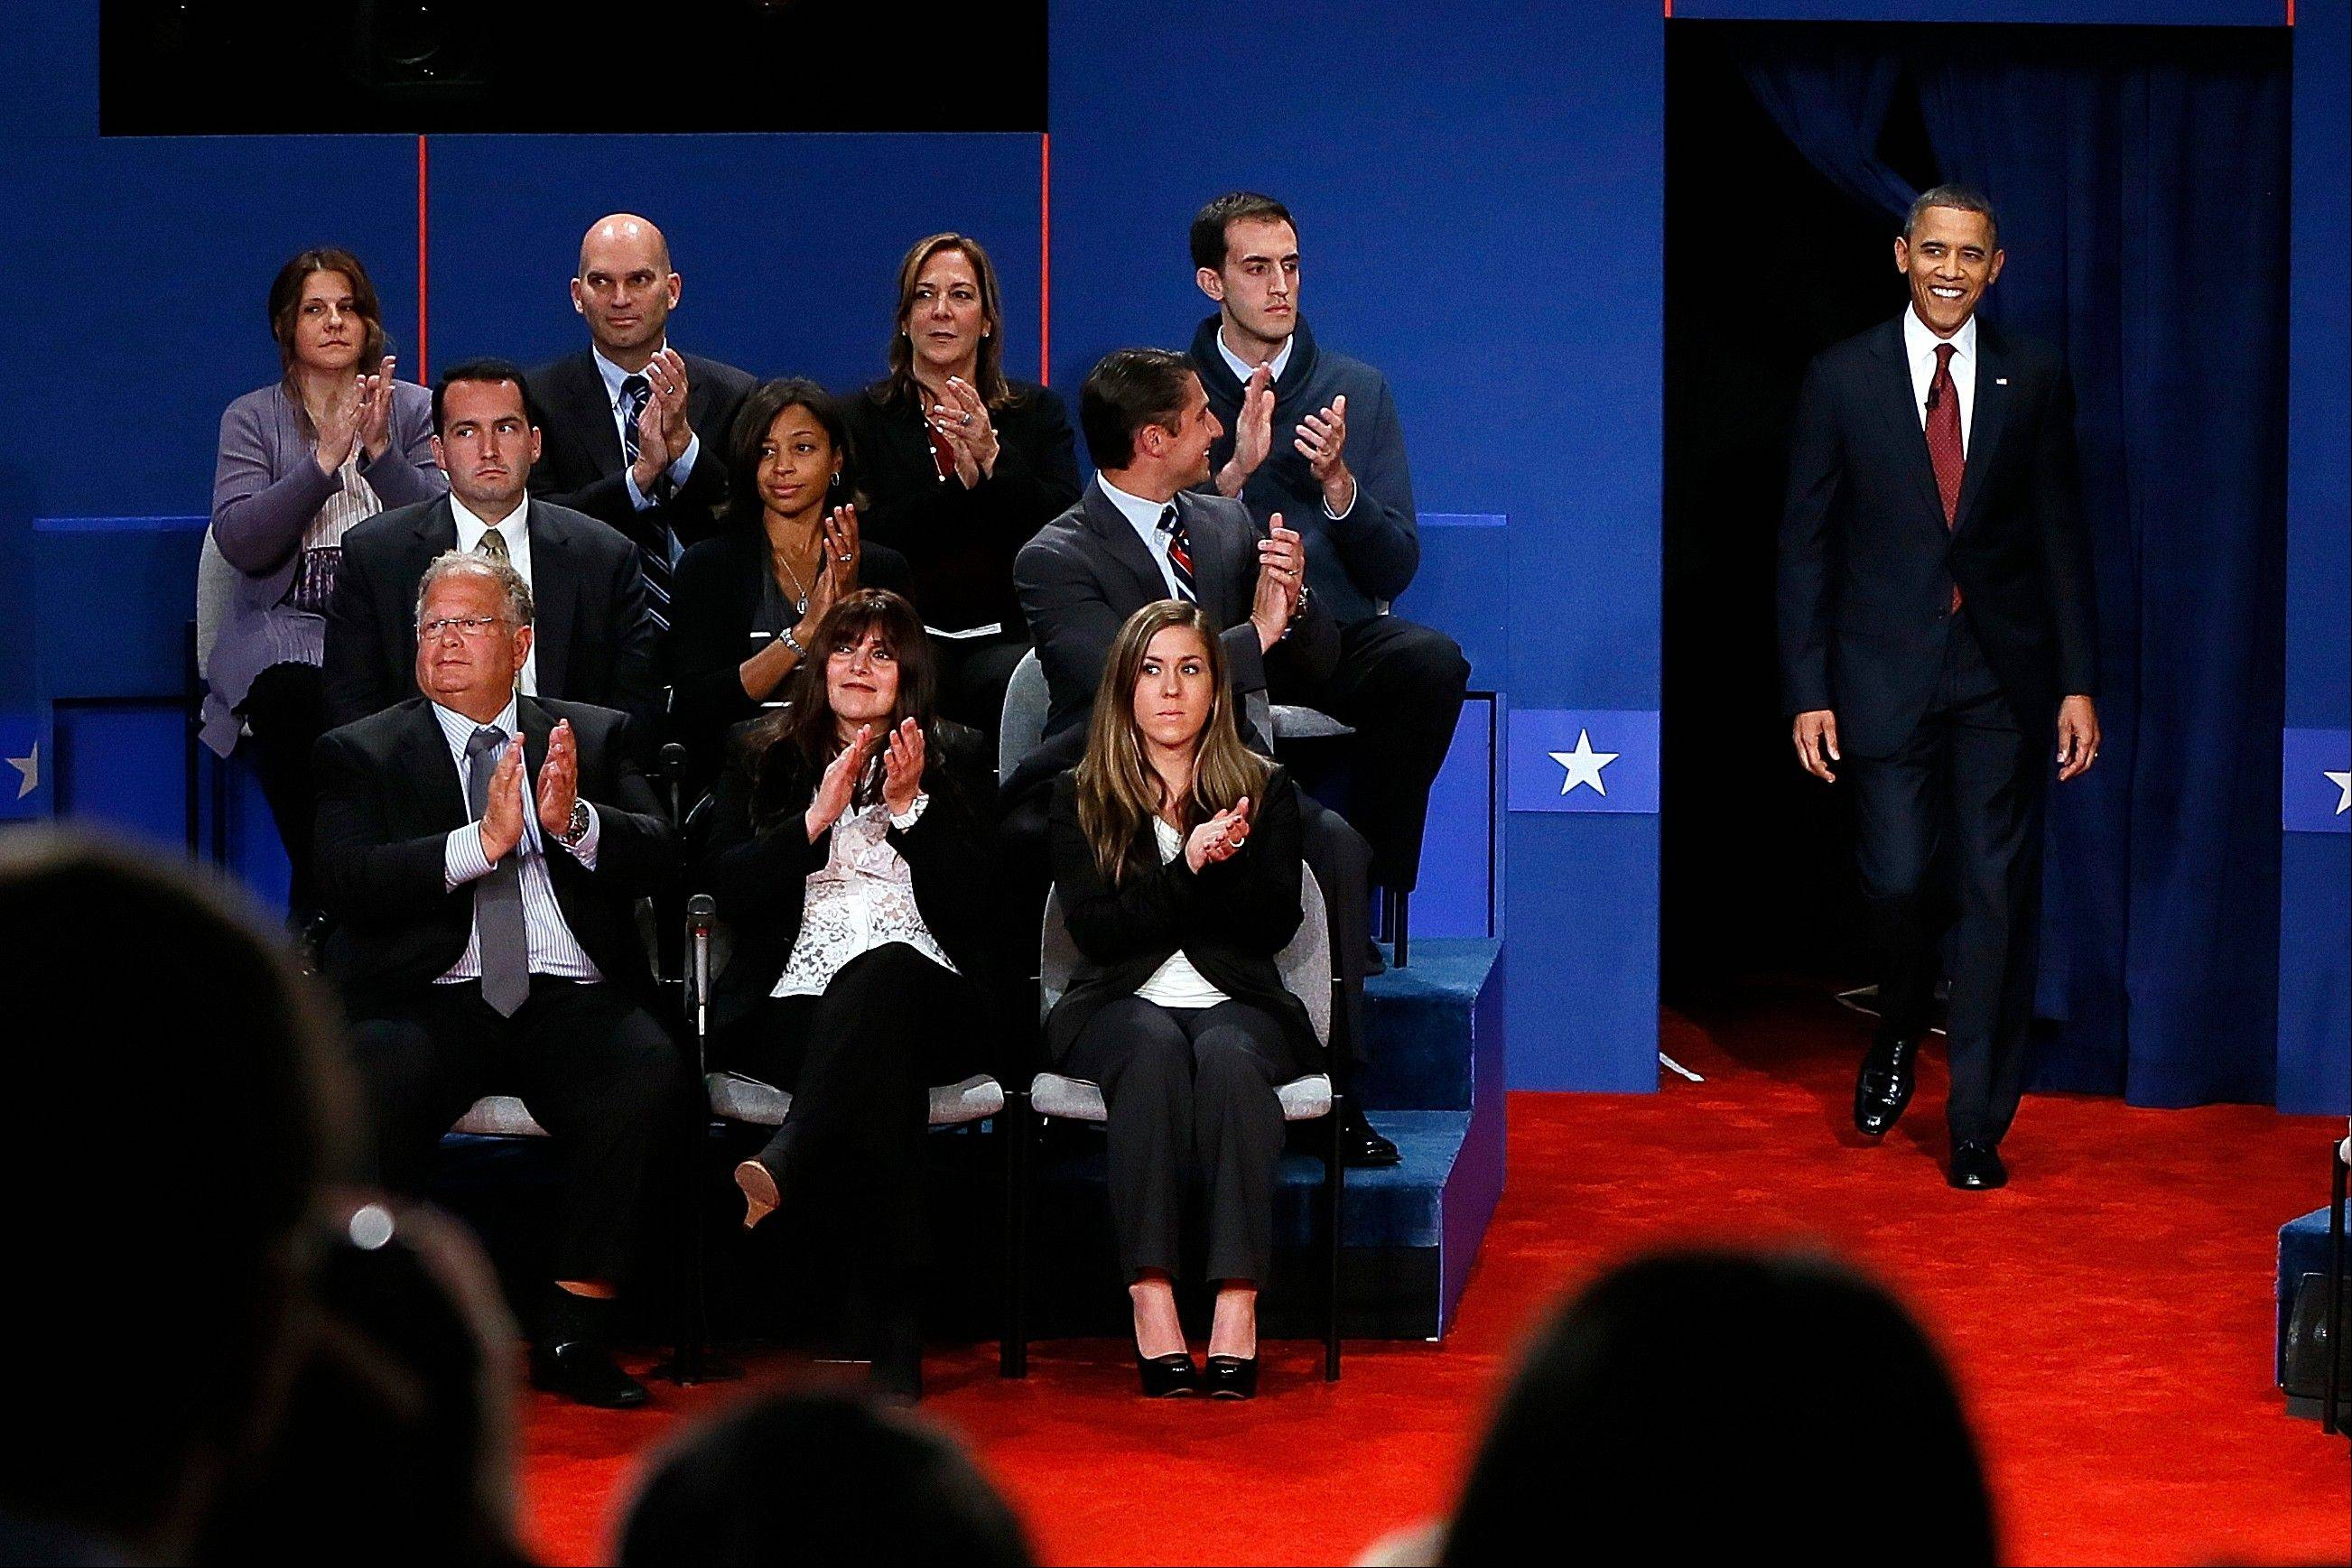 President Barack Obama steps on to the stage during the second presidential debate at Hofstra University, Tuesday, Oct. 16, 2012, in Hempstead, N.Y.